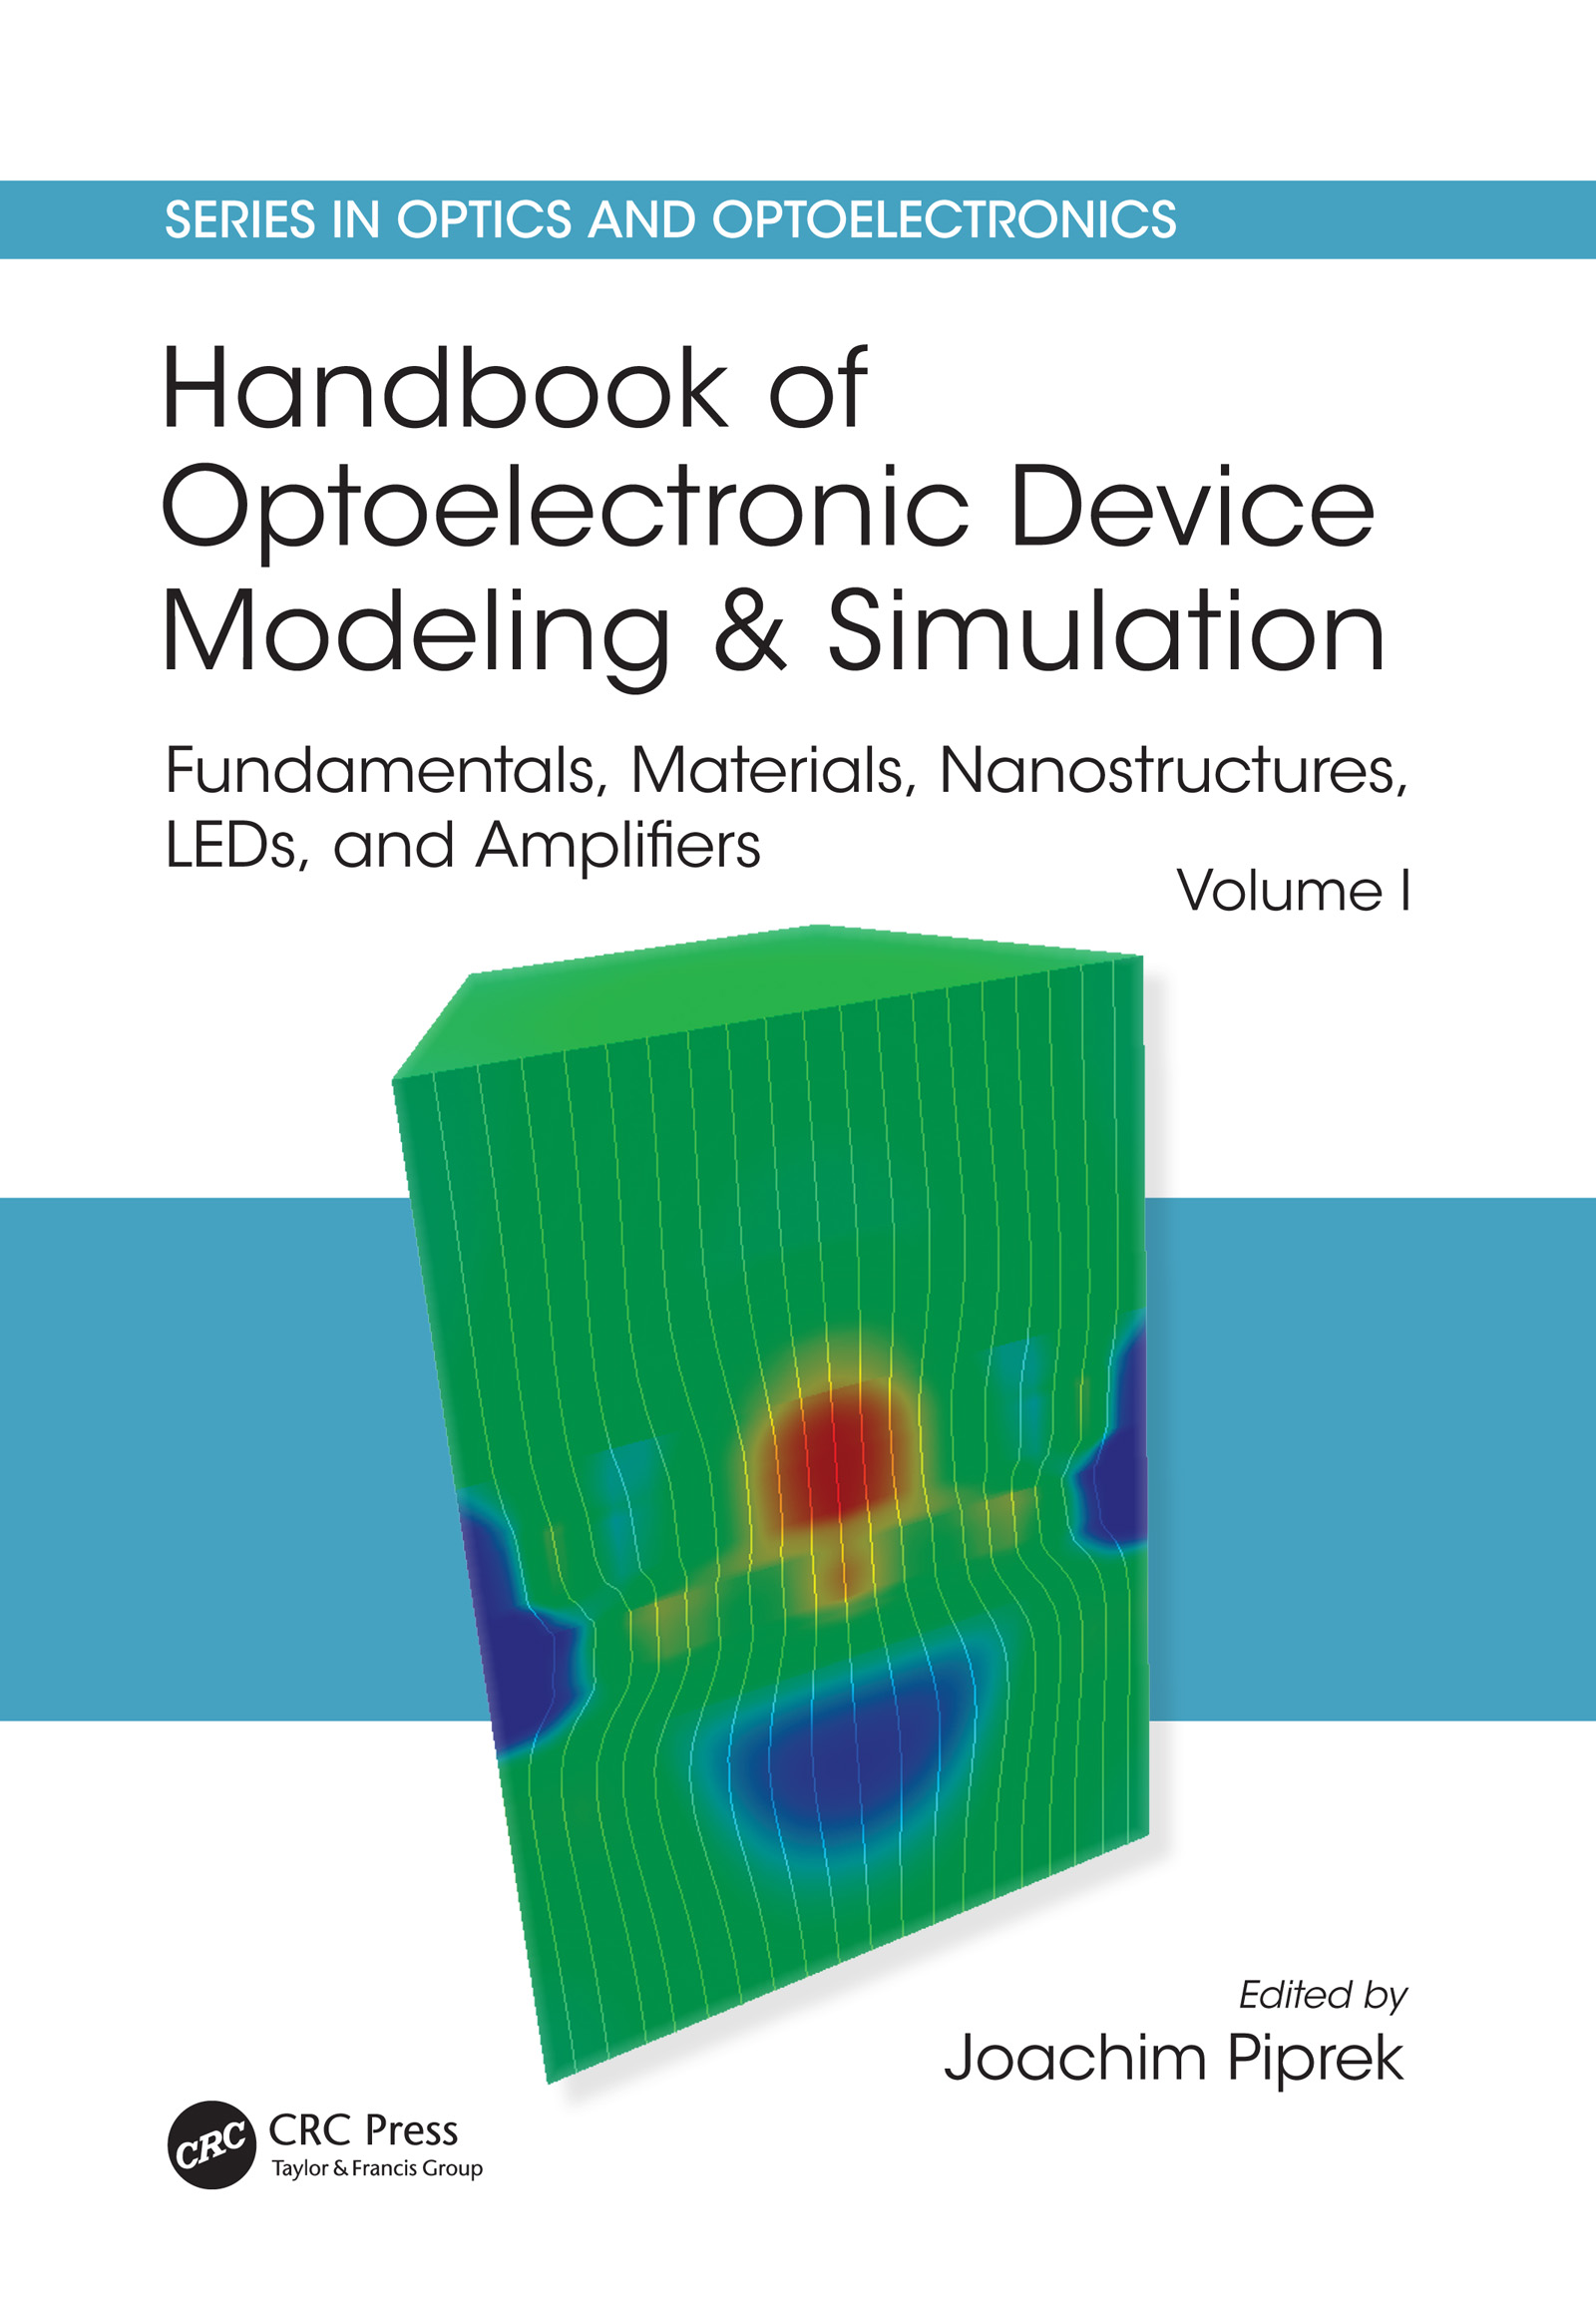 Handbook of Optoelectronic Device Modeling and Simulation